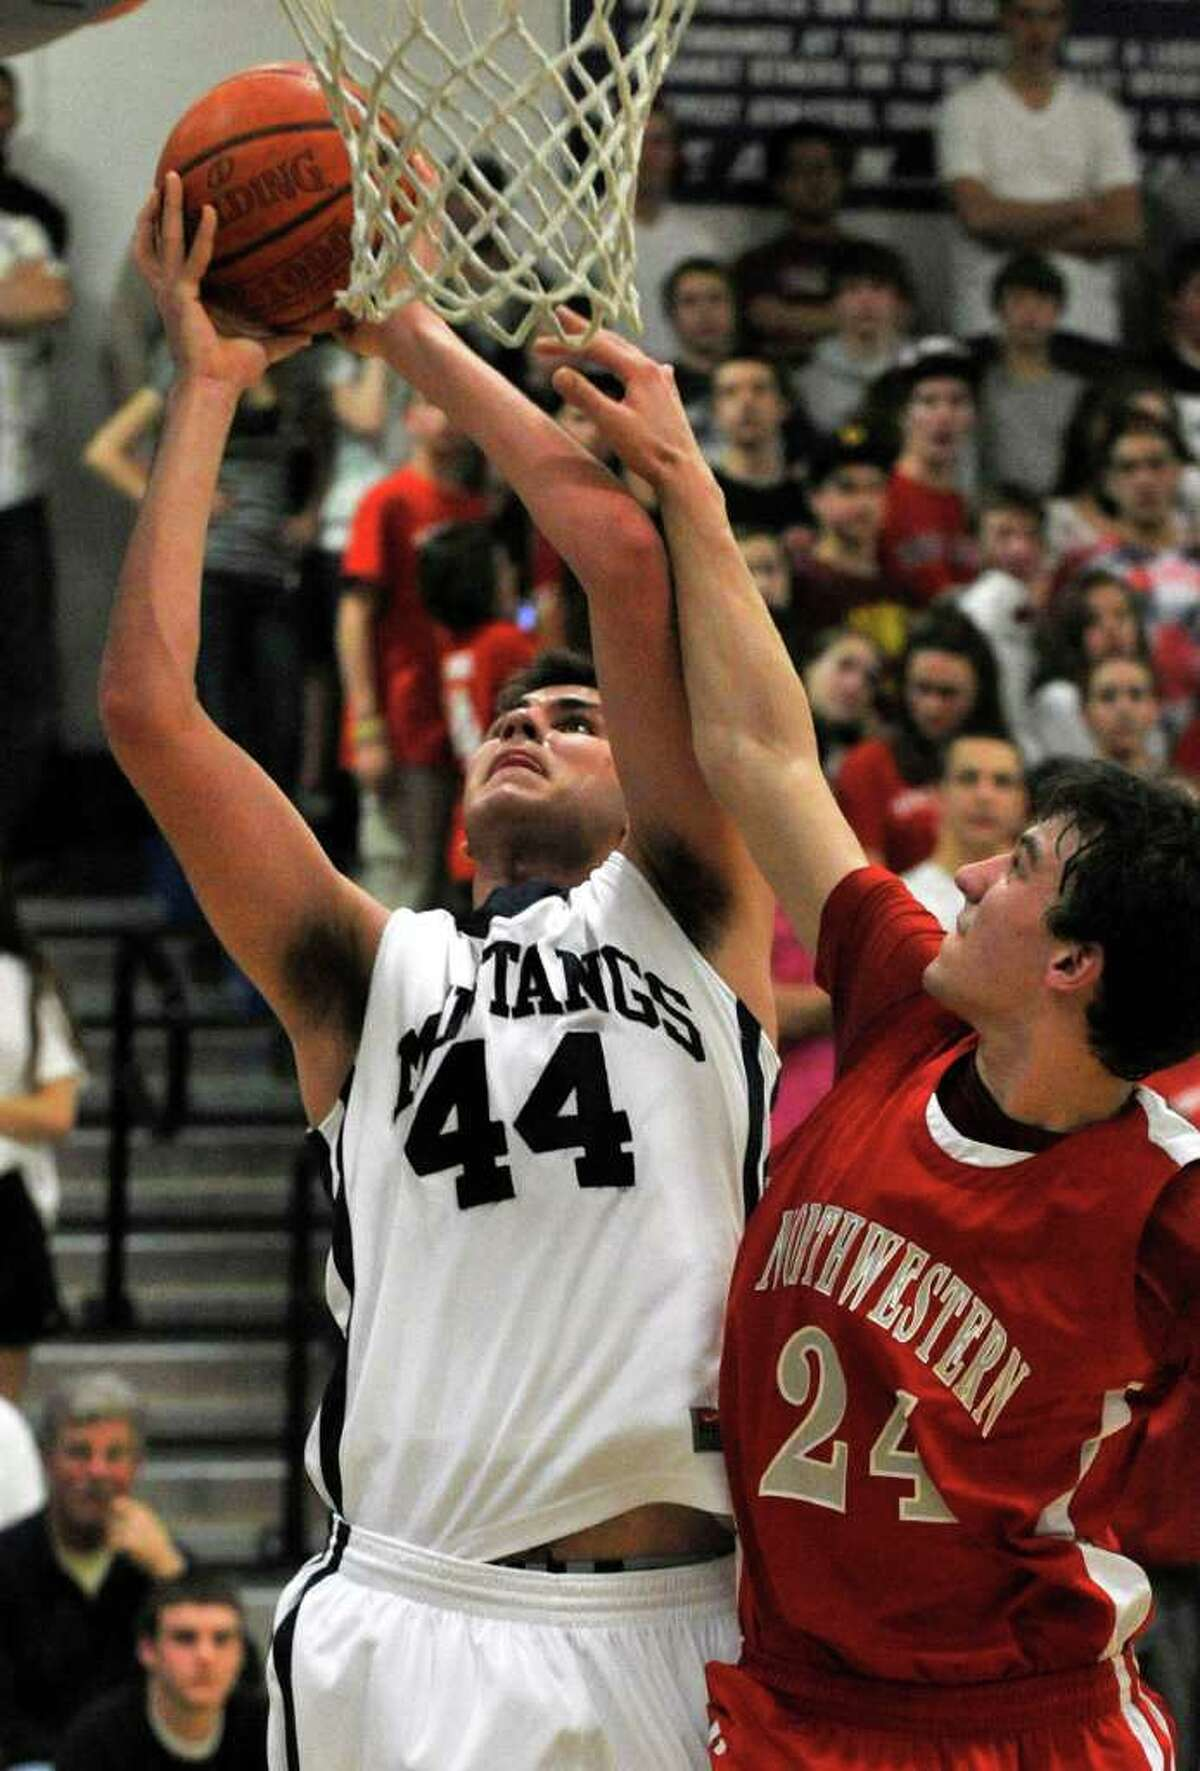 Immaculate's Vitor Melo shoots while under pressure from Northwestern Regional's Mike Jeffko during their Class S state semifinal game at Plainville High School on Tuesday, March 13, 2012. Immaculate won 76-51.